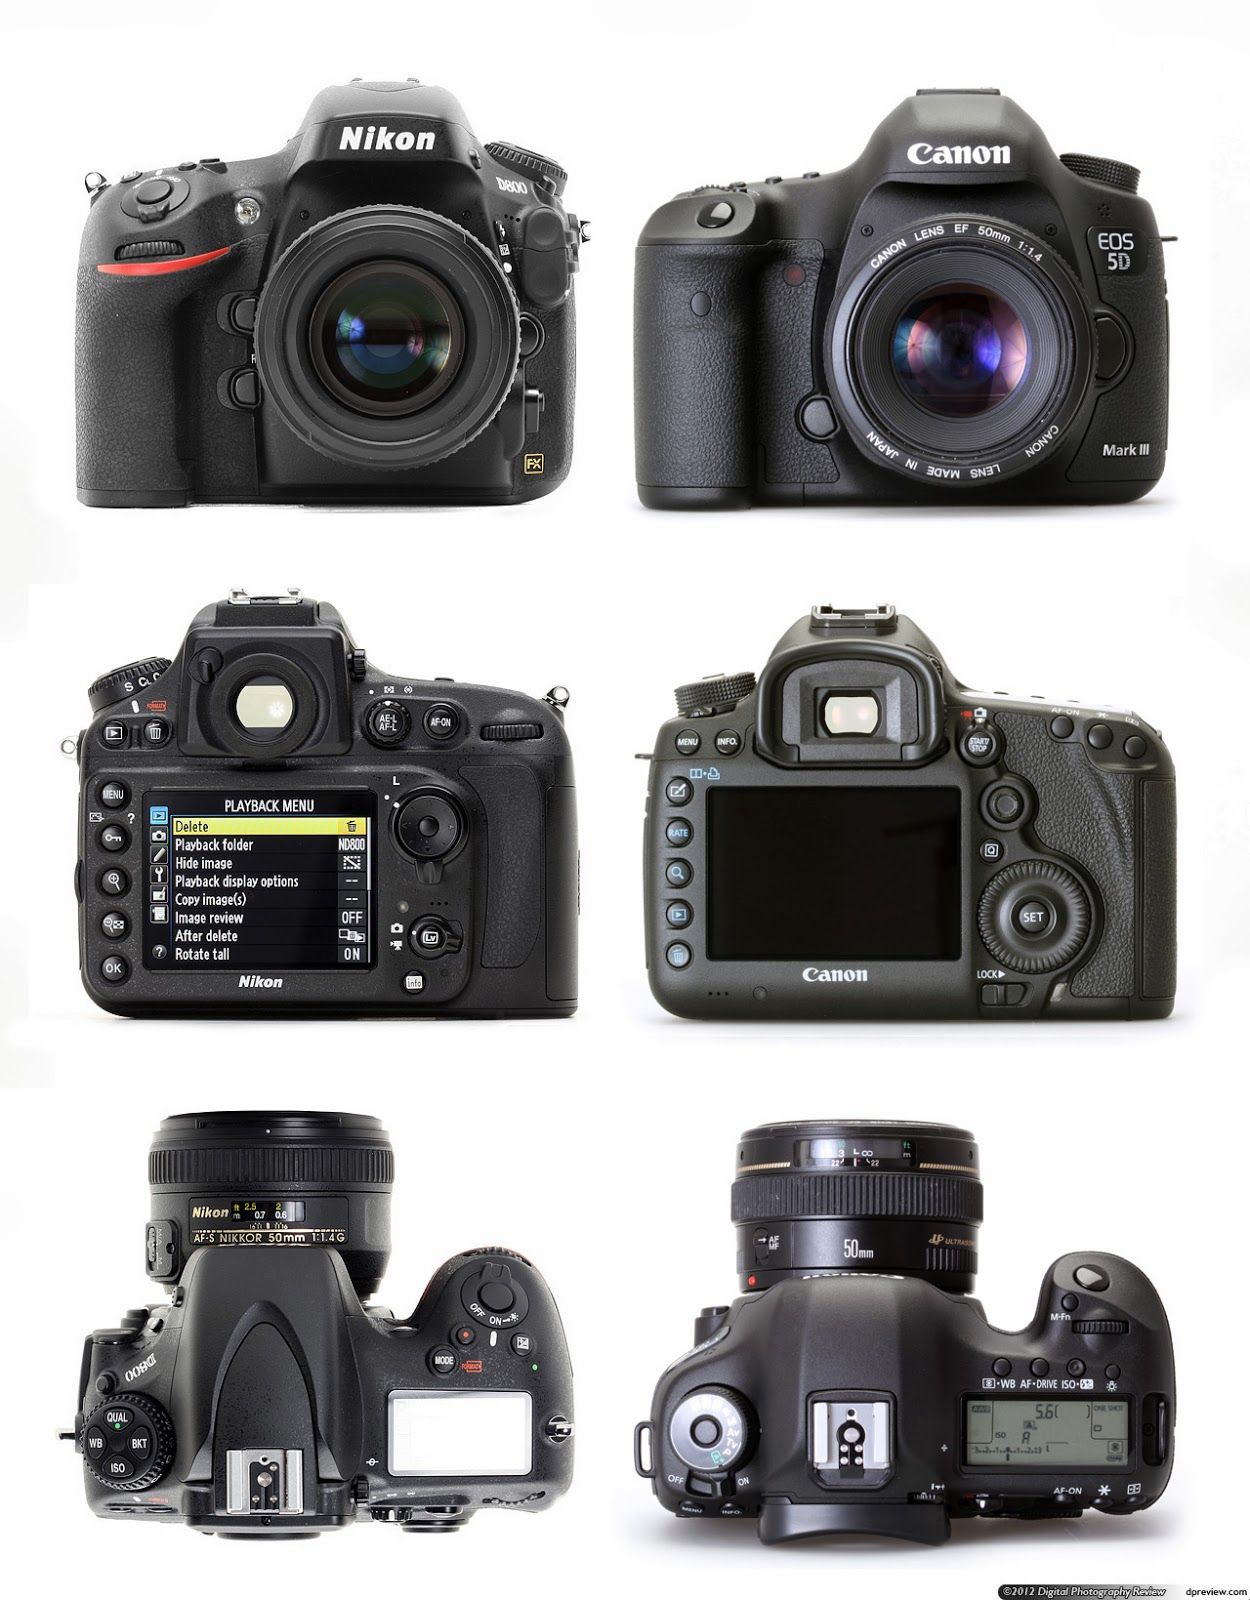 Nikon D800, Canon EOS 5D Mark III, Canon VS Nikon, full DSLR camera, full HD video, nikon full frame, canon full frame